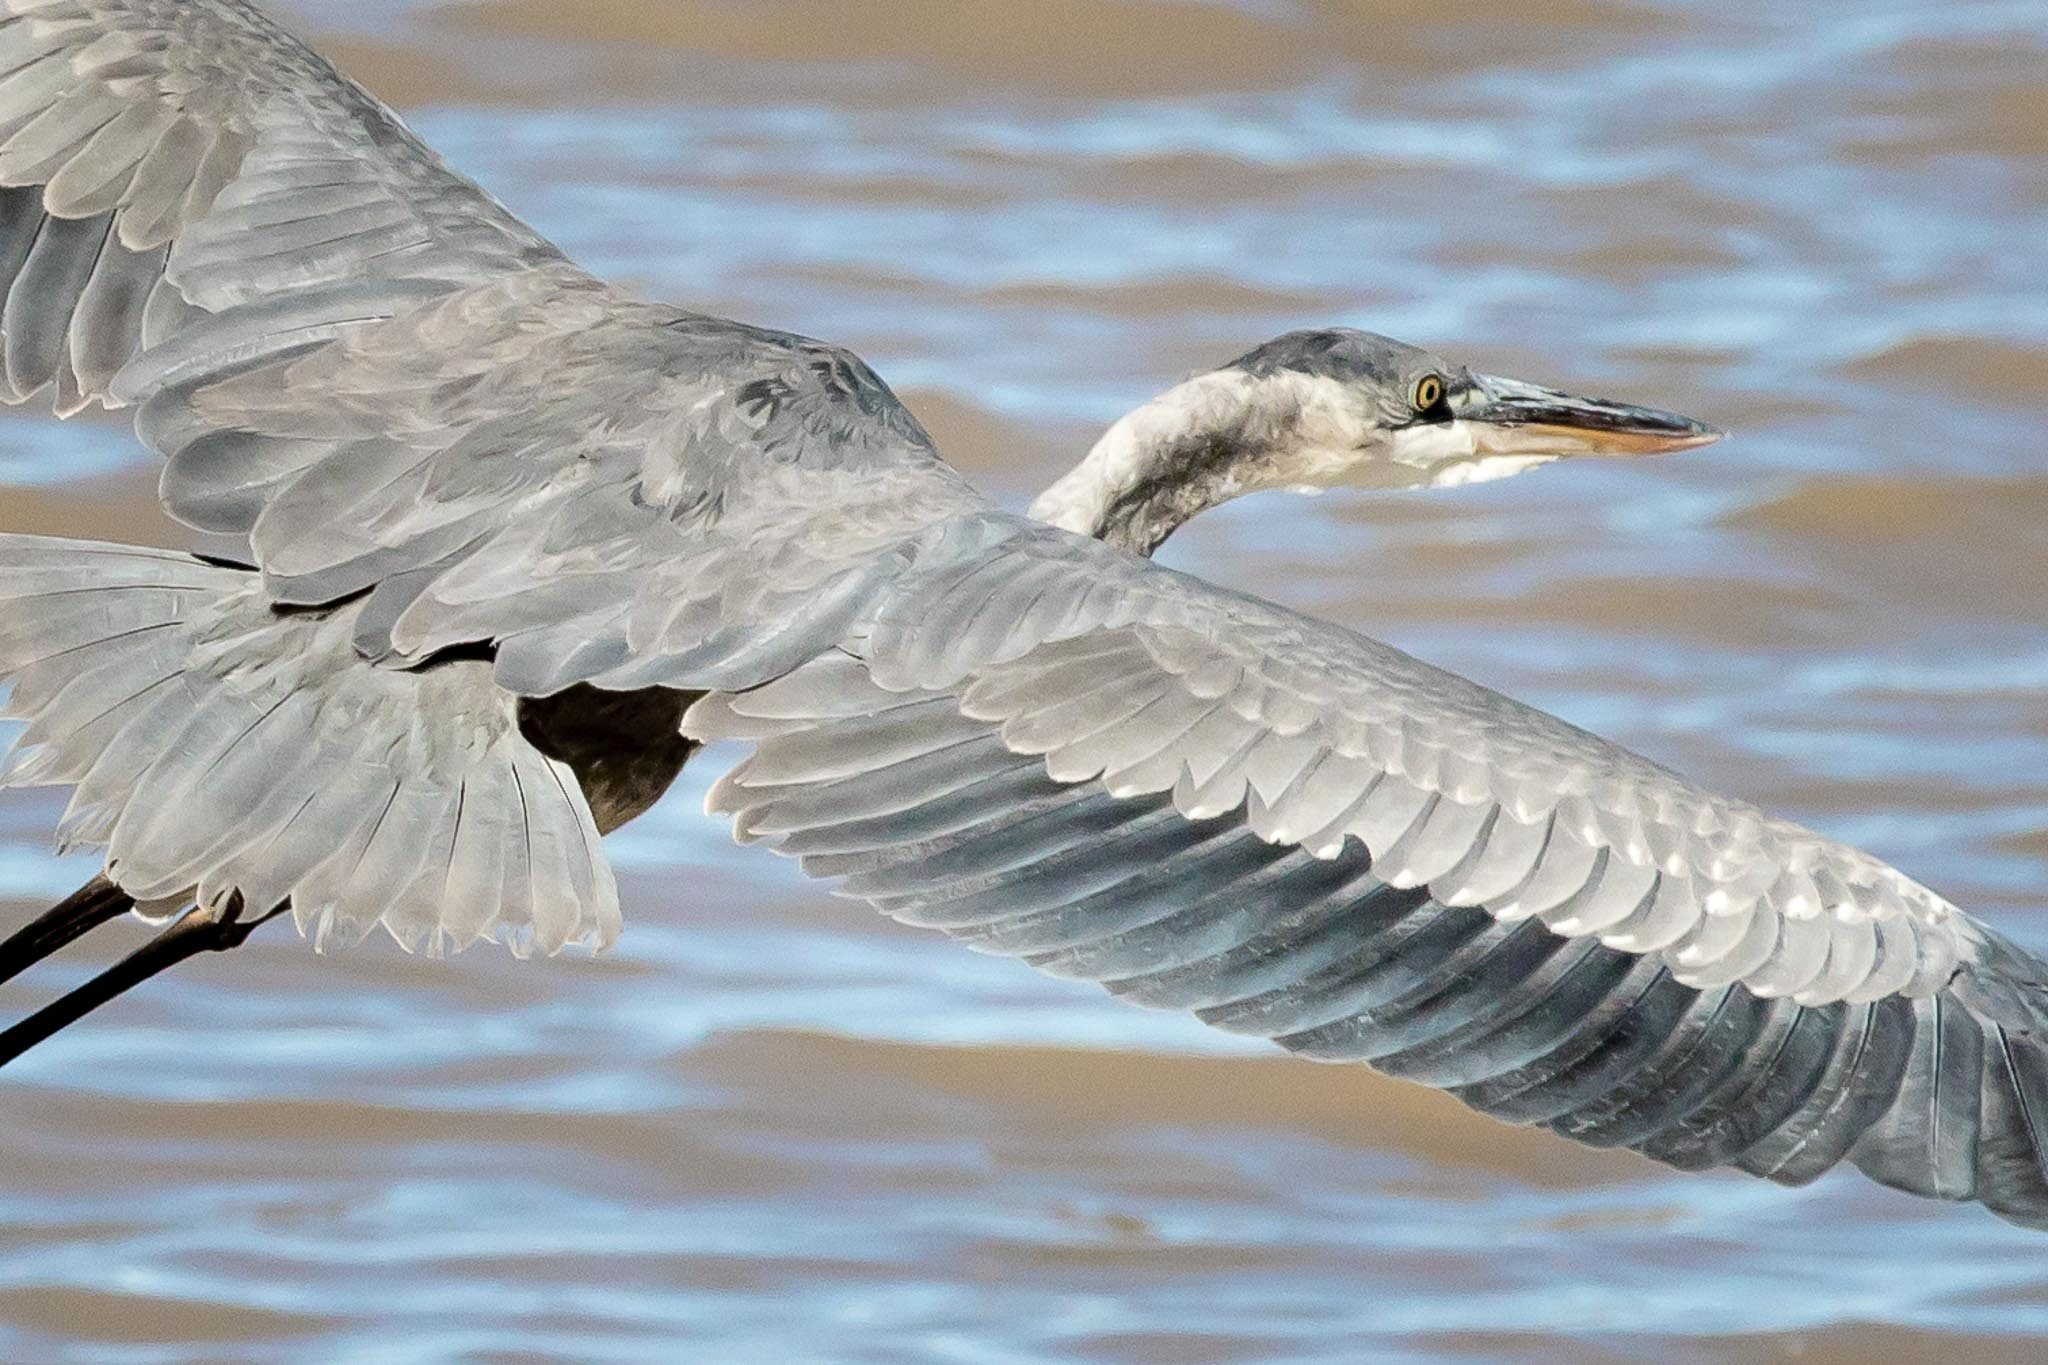 Great Blue Heron flying over pond, Bosque del Apache National Wildlife Refuge, San Antonio NM, October 23, 2017